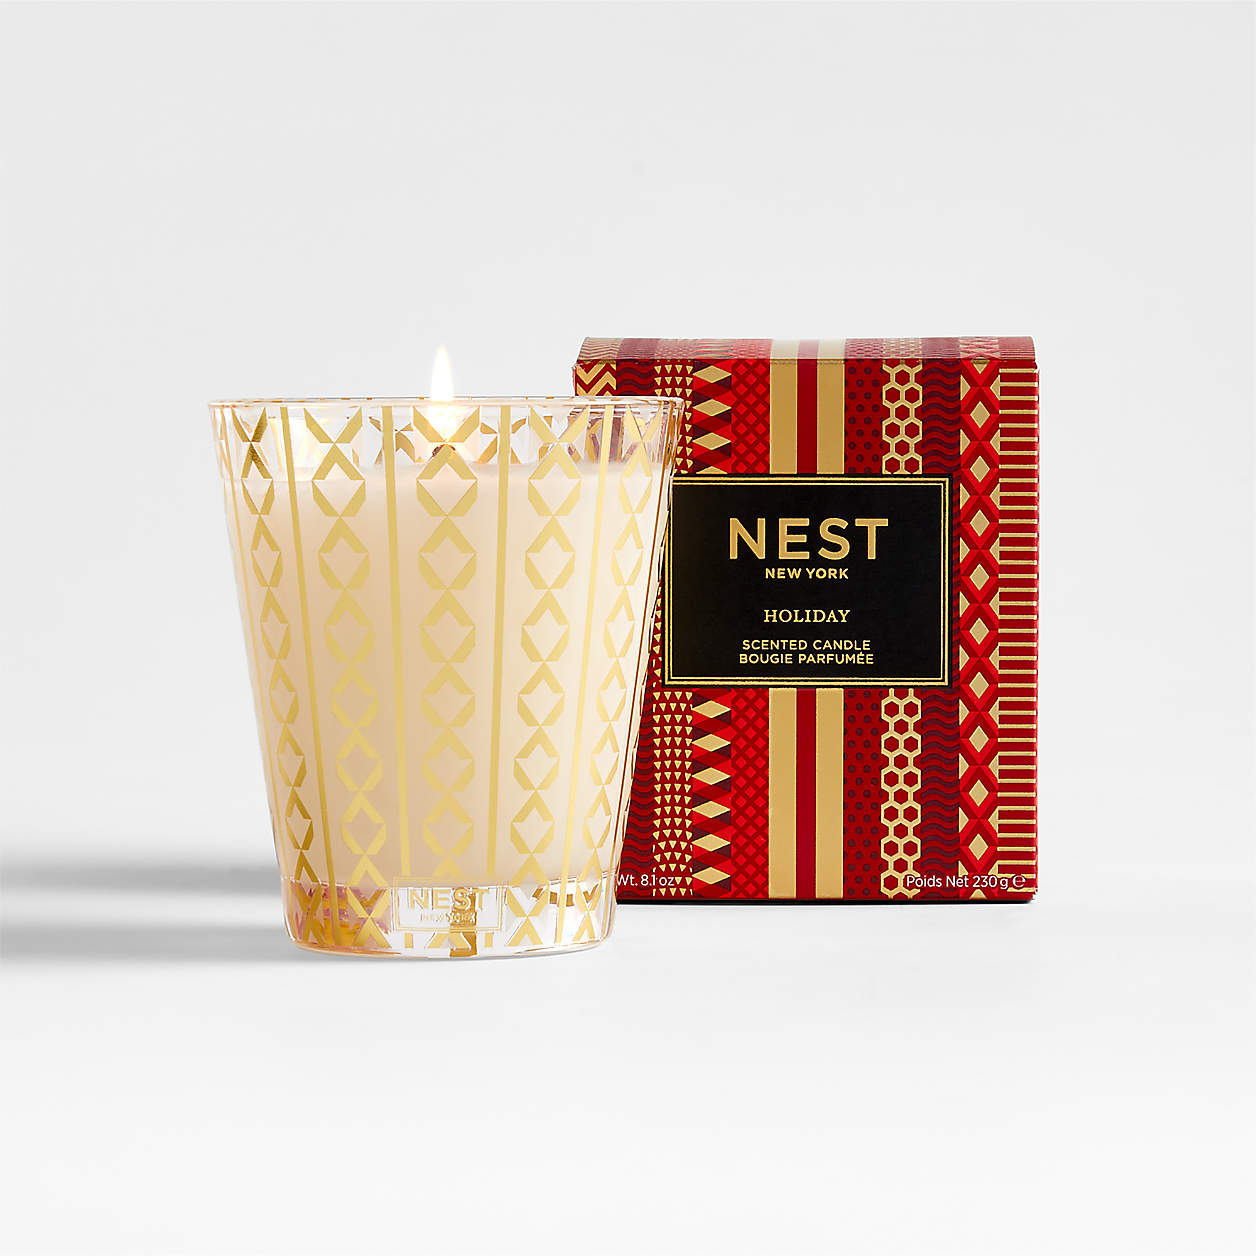 nest scented holiday candle